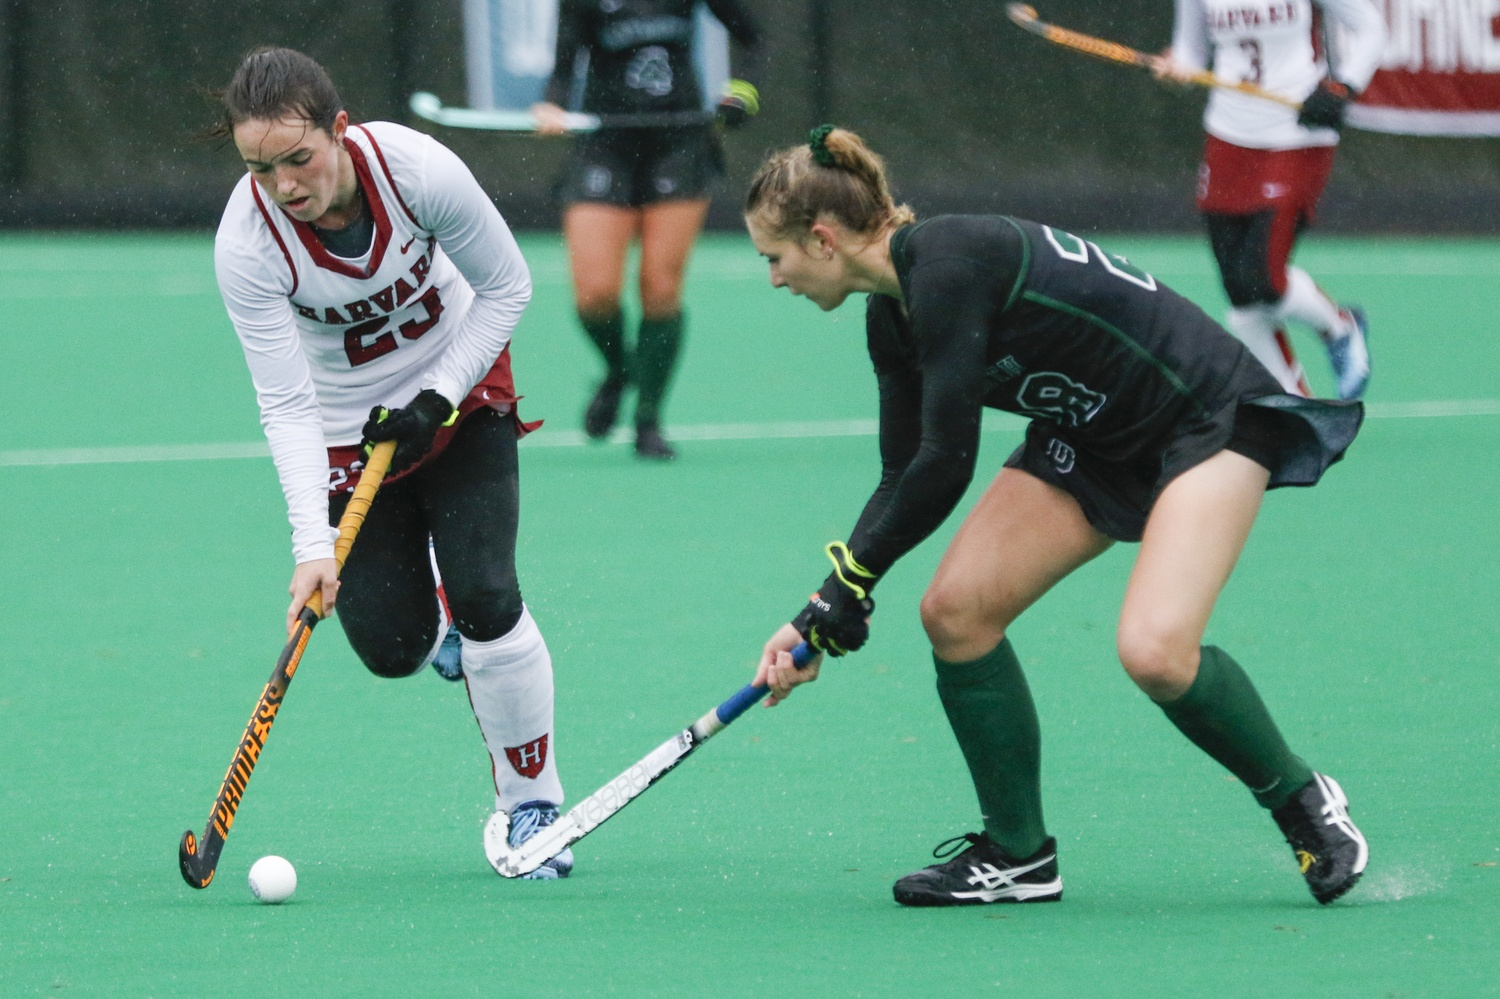 The Crimson's 6-0 shutout win over Dartmouth guarantees itself a share of the title no matter the results of the final weekend of play.